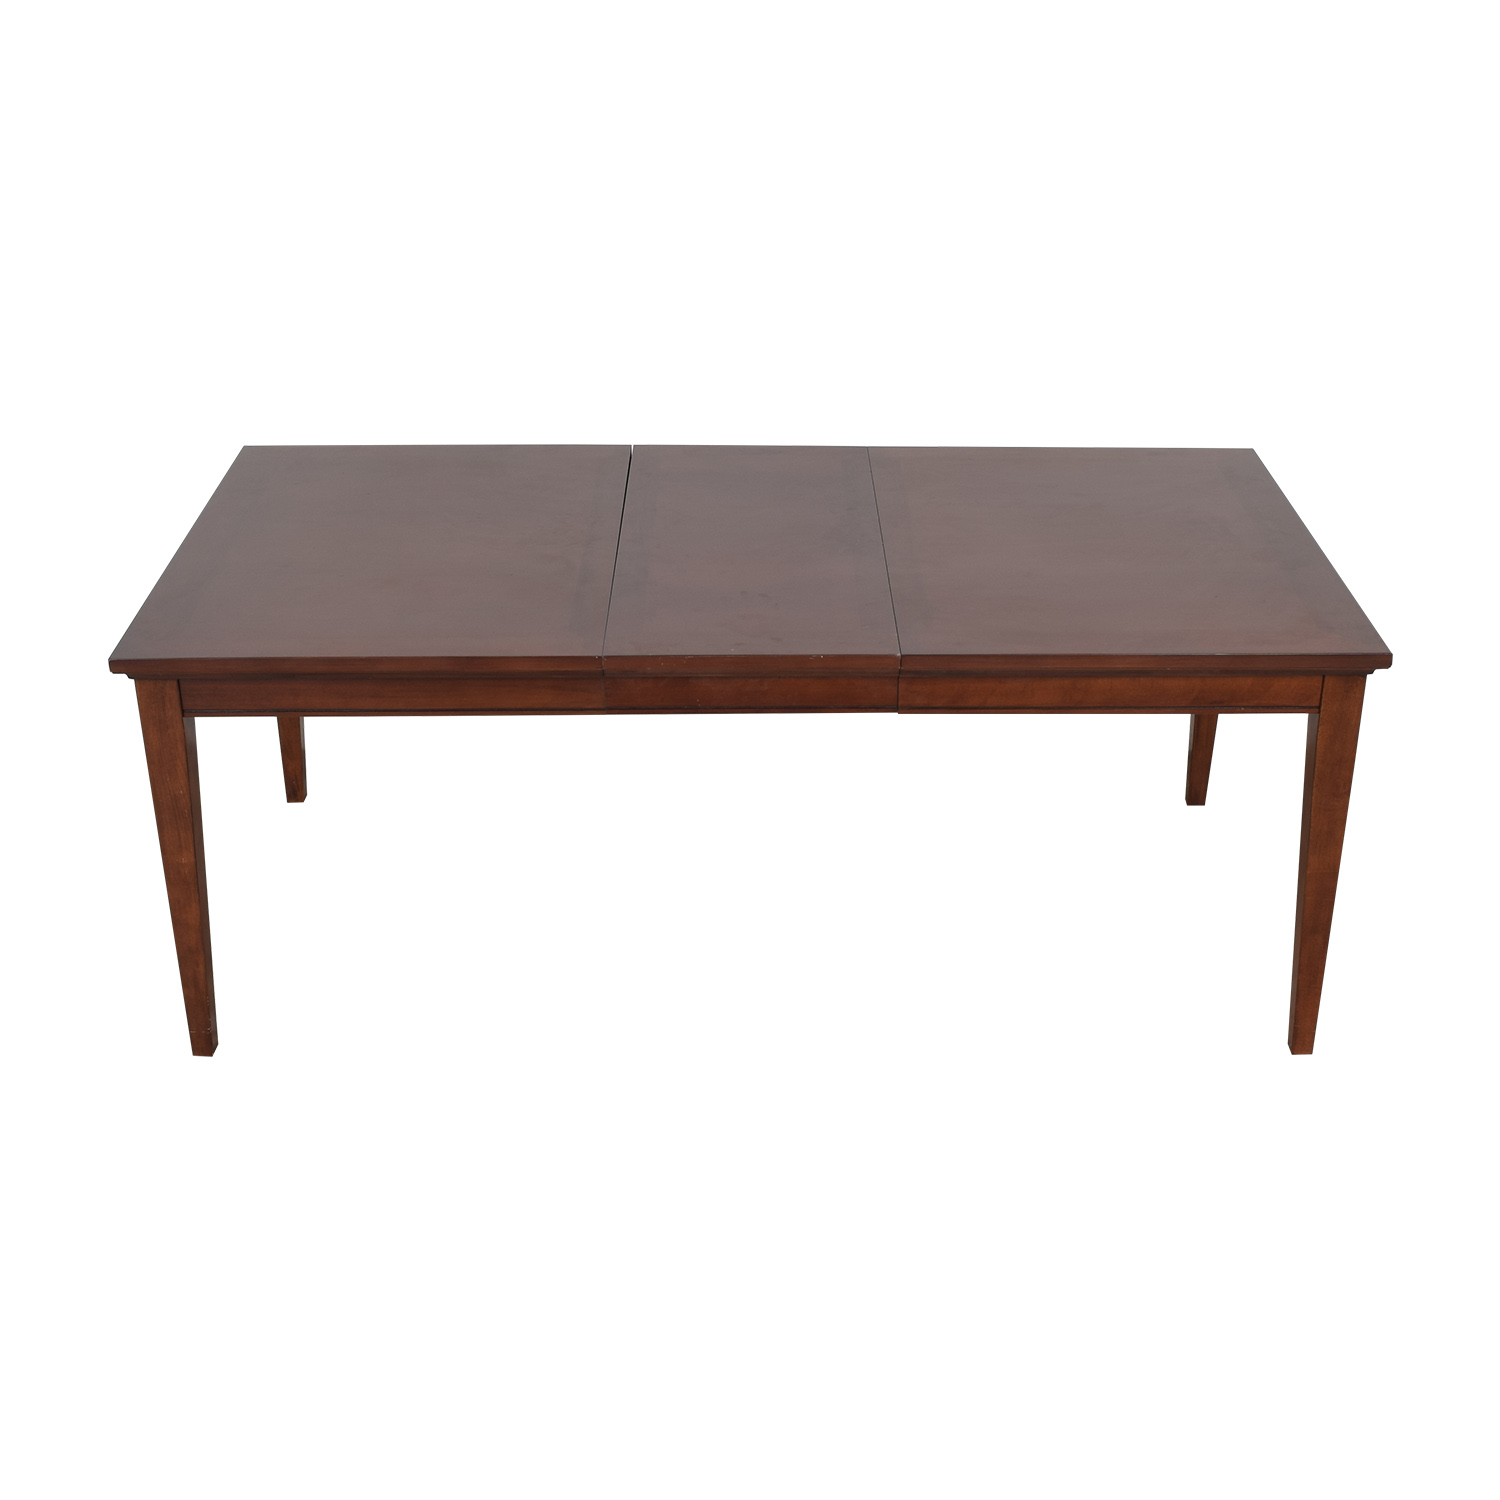 Legacy Classic Furniture Legacy Classic Funiture Dining Table second hand